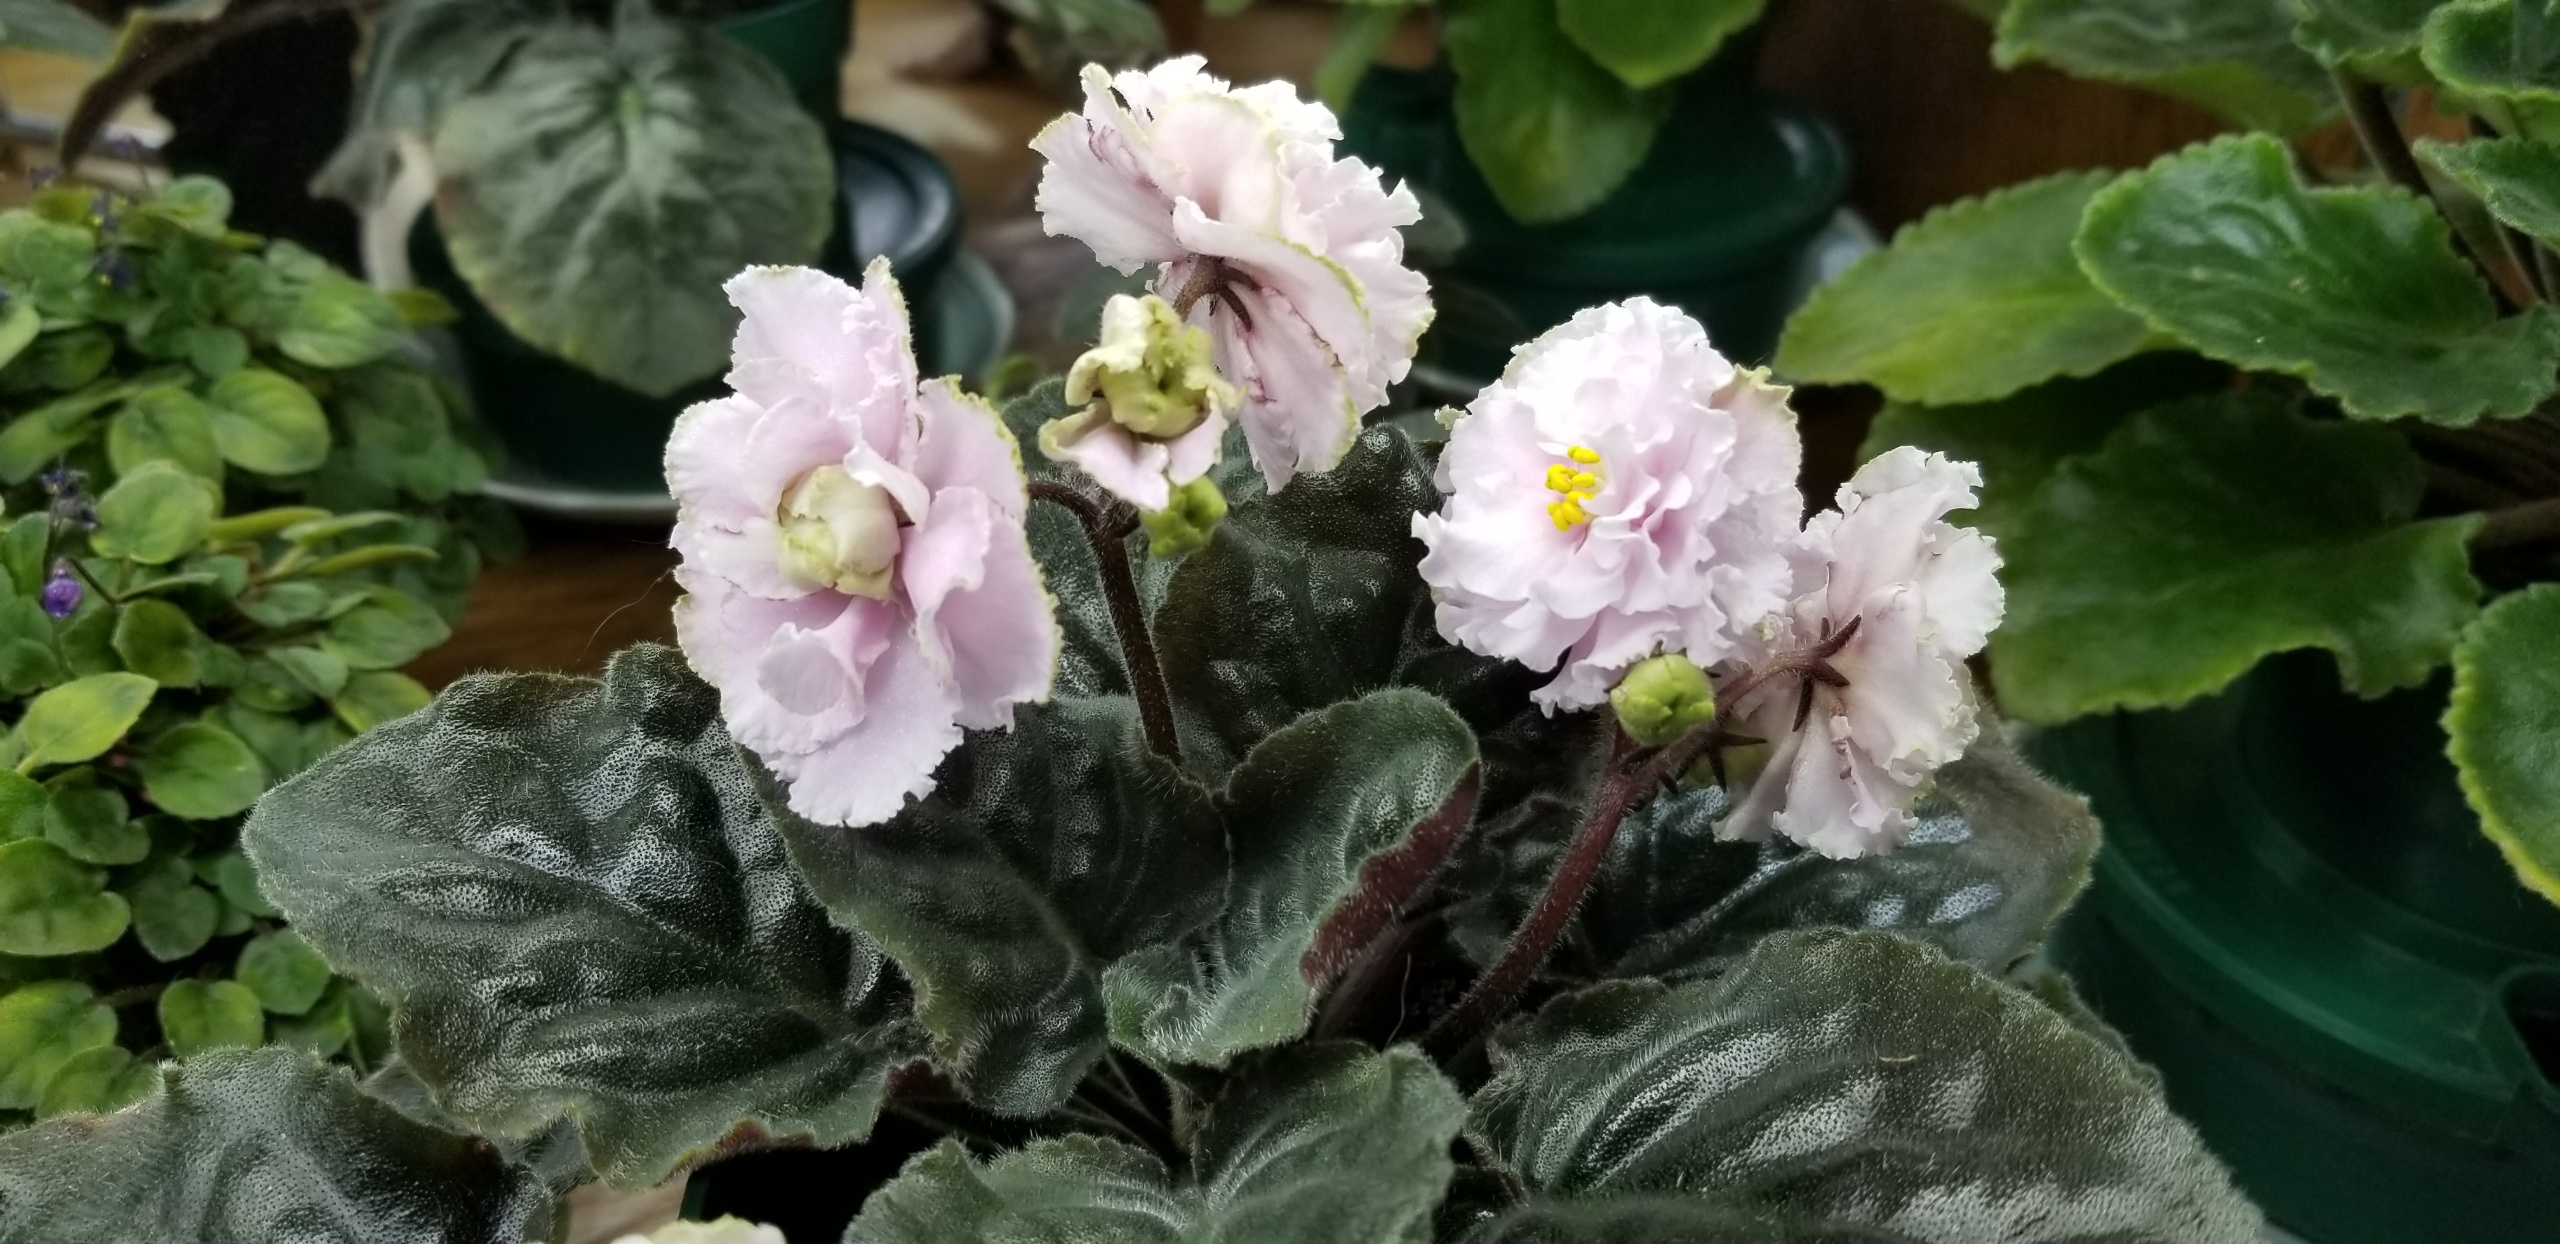 ":  White to pale pink 2.25"" blooms semidouble large wavy star ruffled.                                                                                                          Size/growth habit:  Medium green pointed quilted ovate foliage"